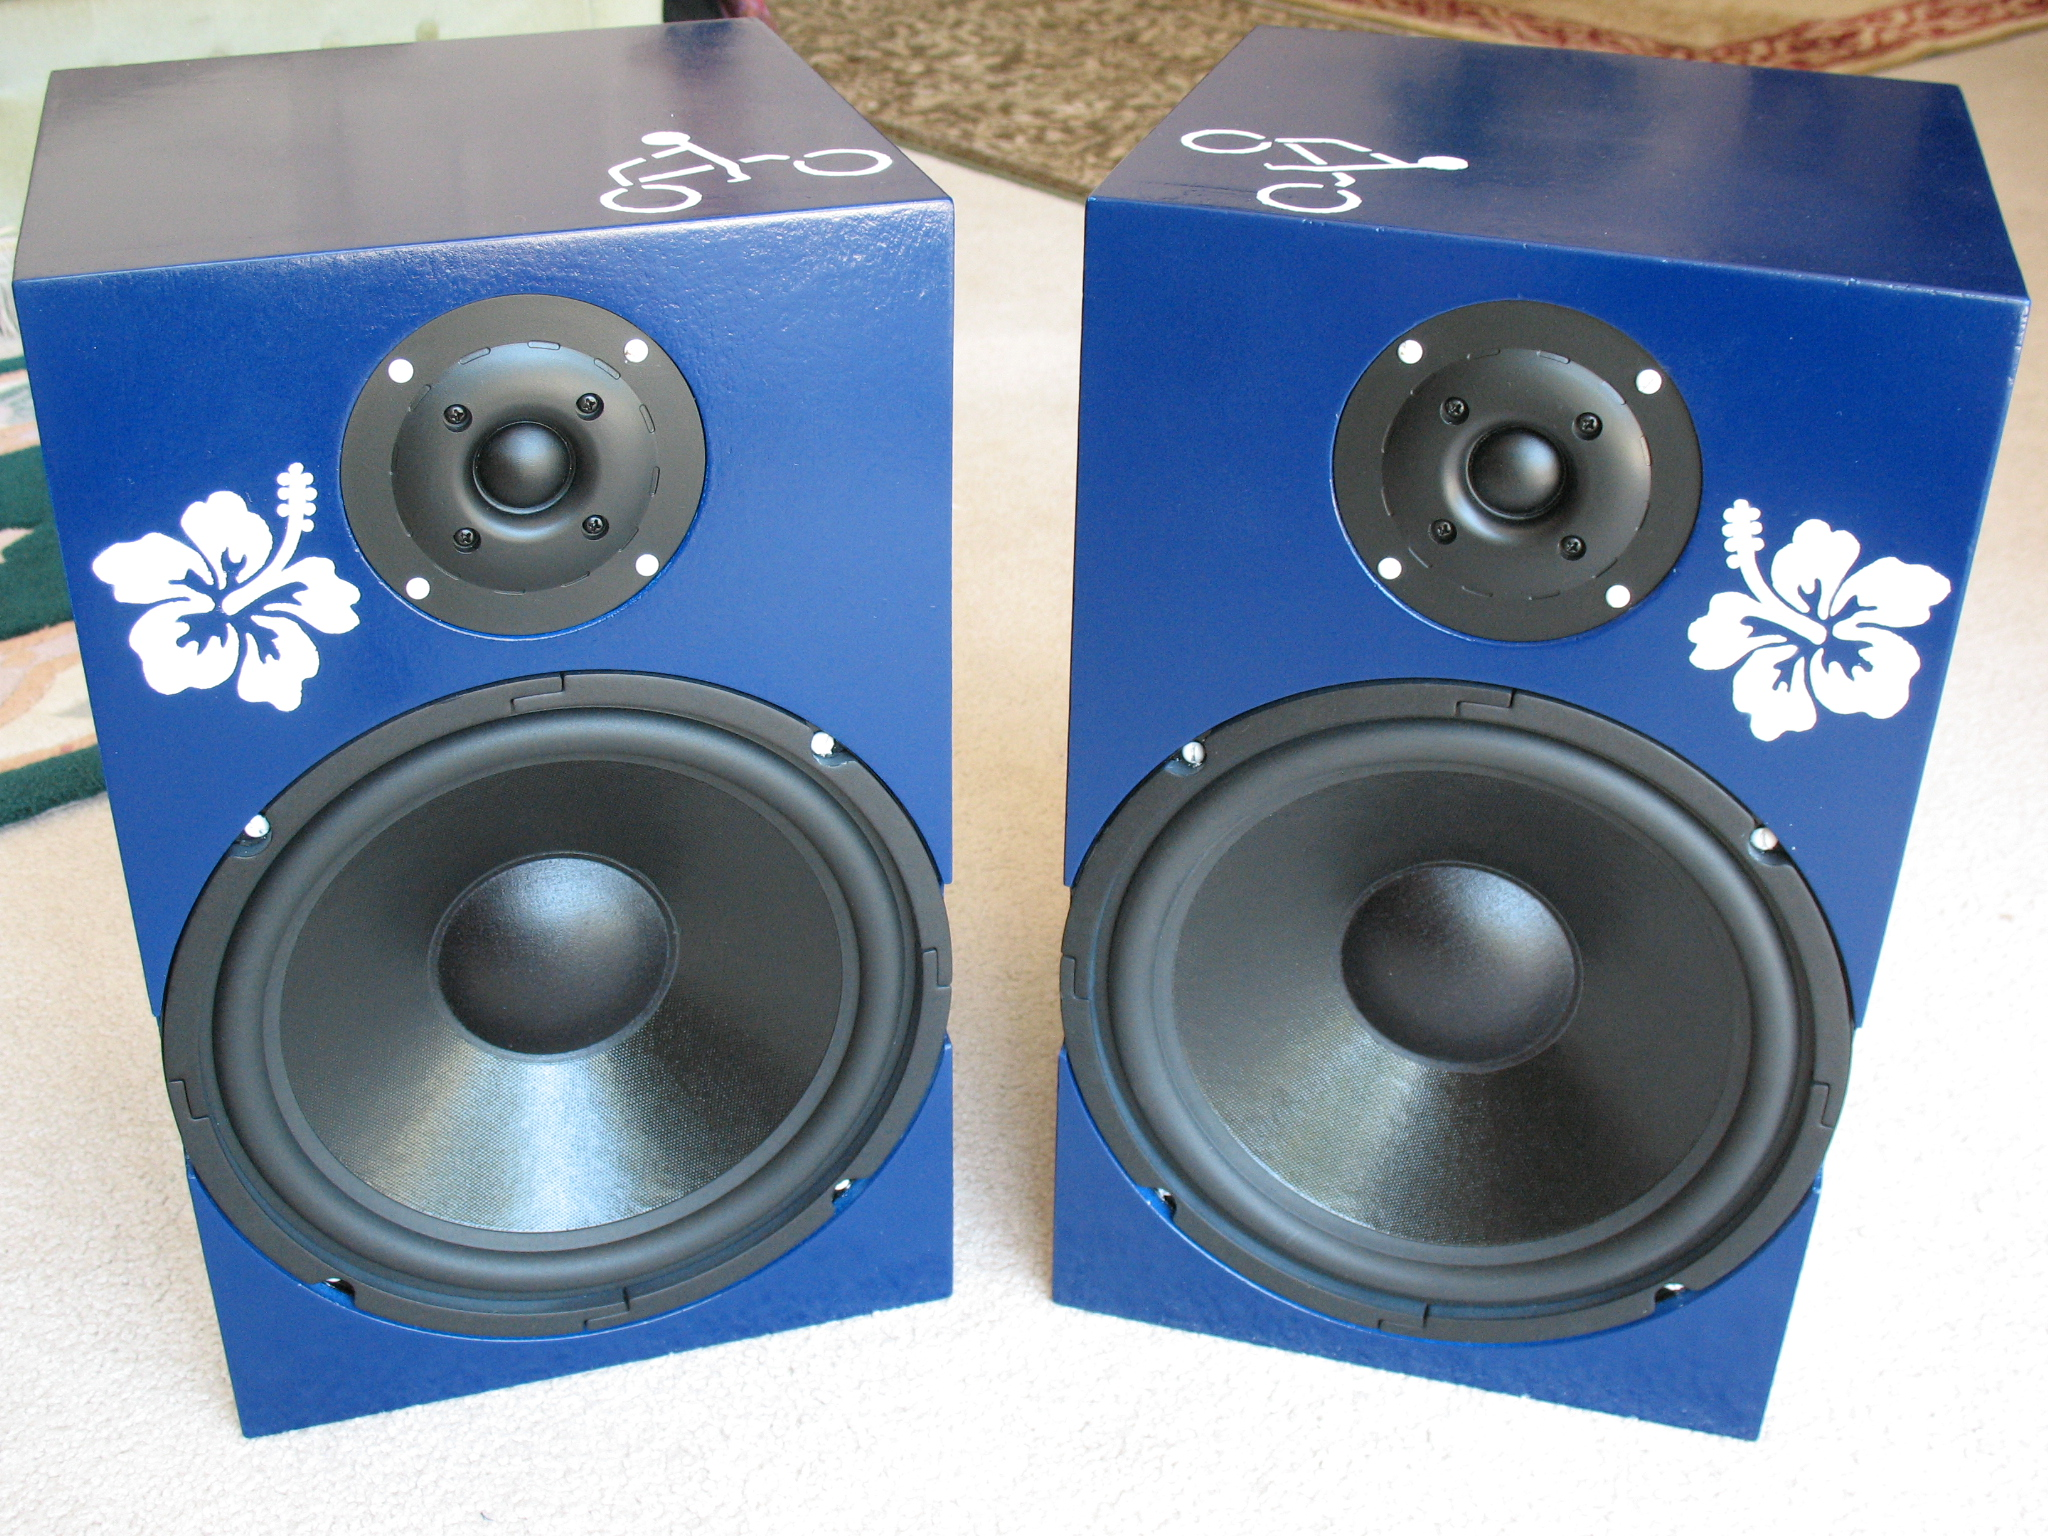 Build A Pair of Stereo Speakers